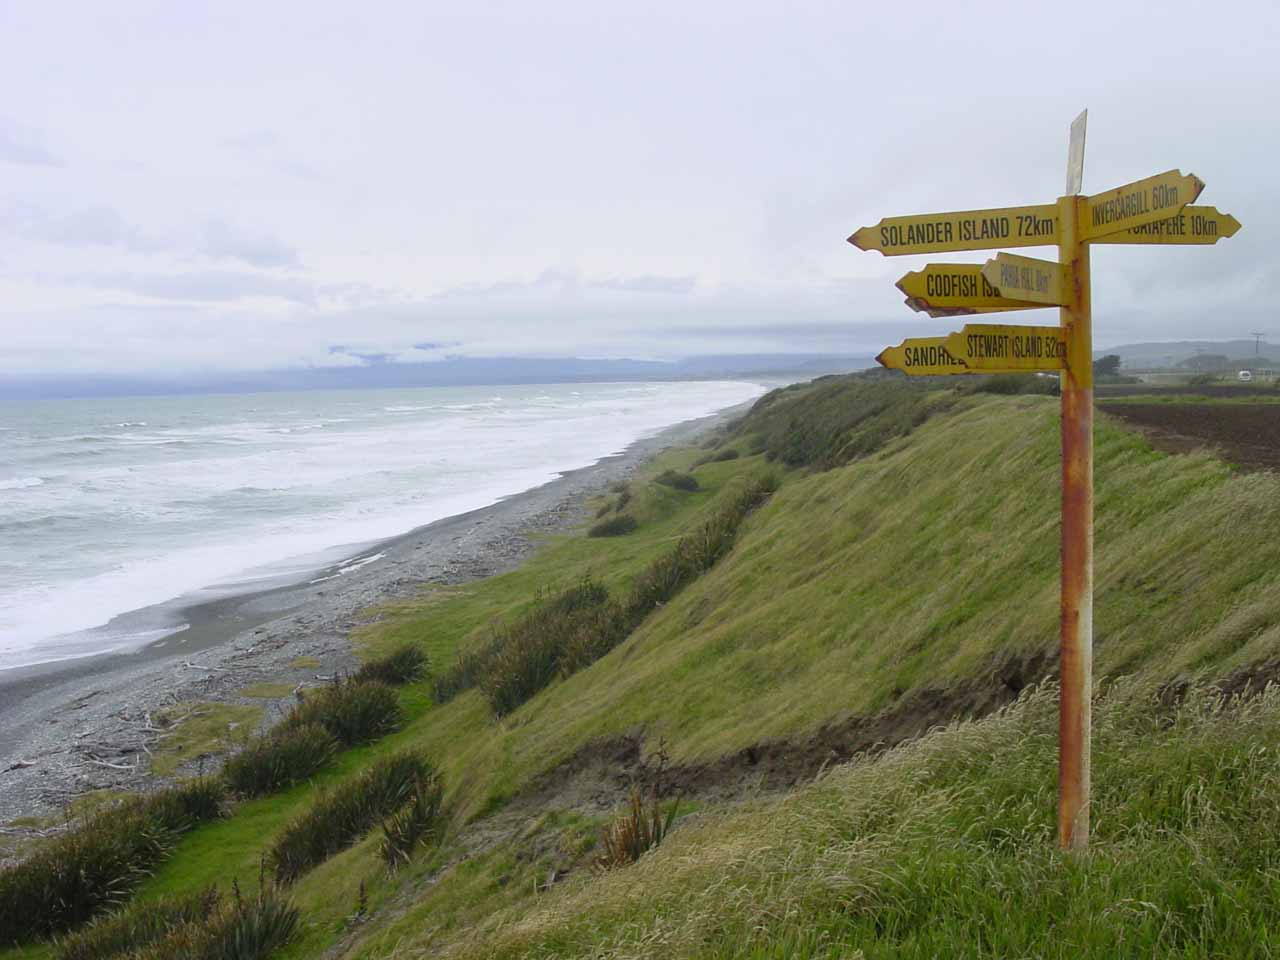 To the west of Invercargill was McCracken's Rest where we got this interesting view of the Southern Ocean and a sign pointing to interesting sites